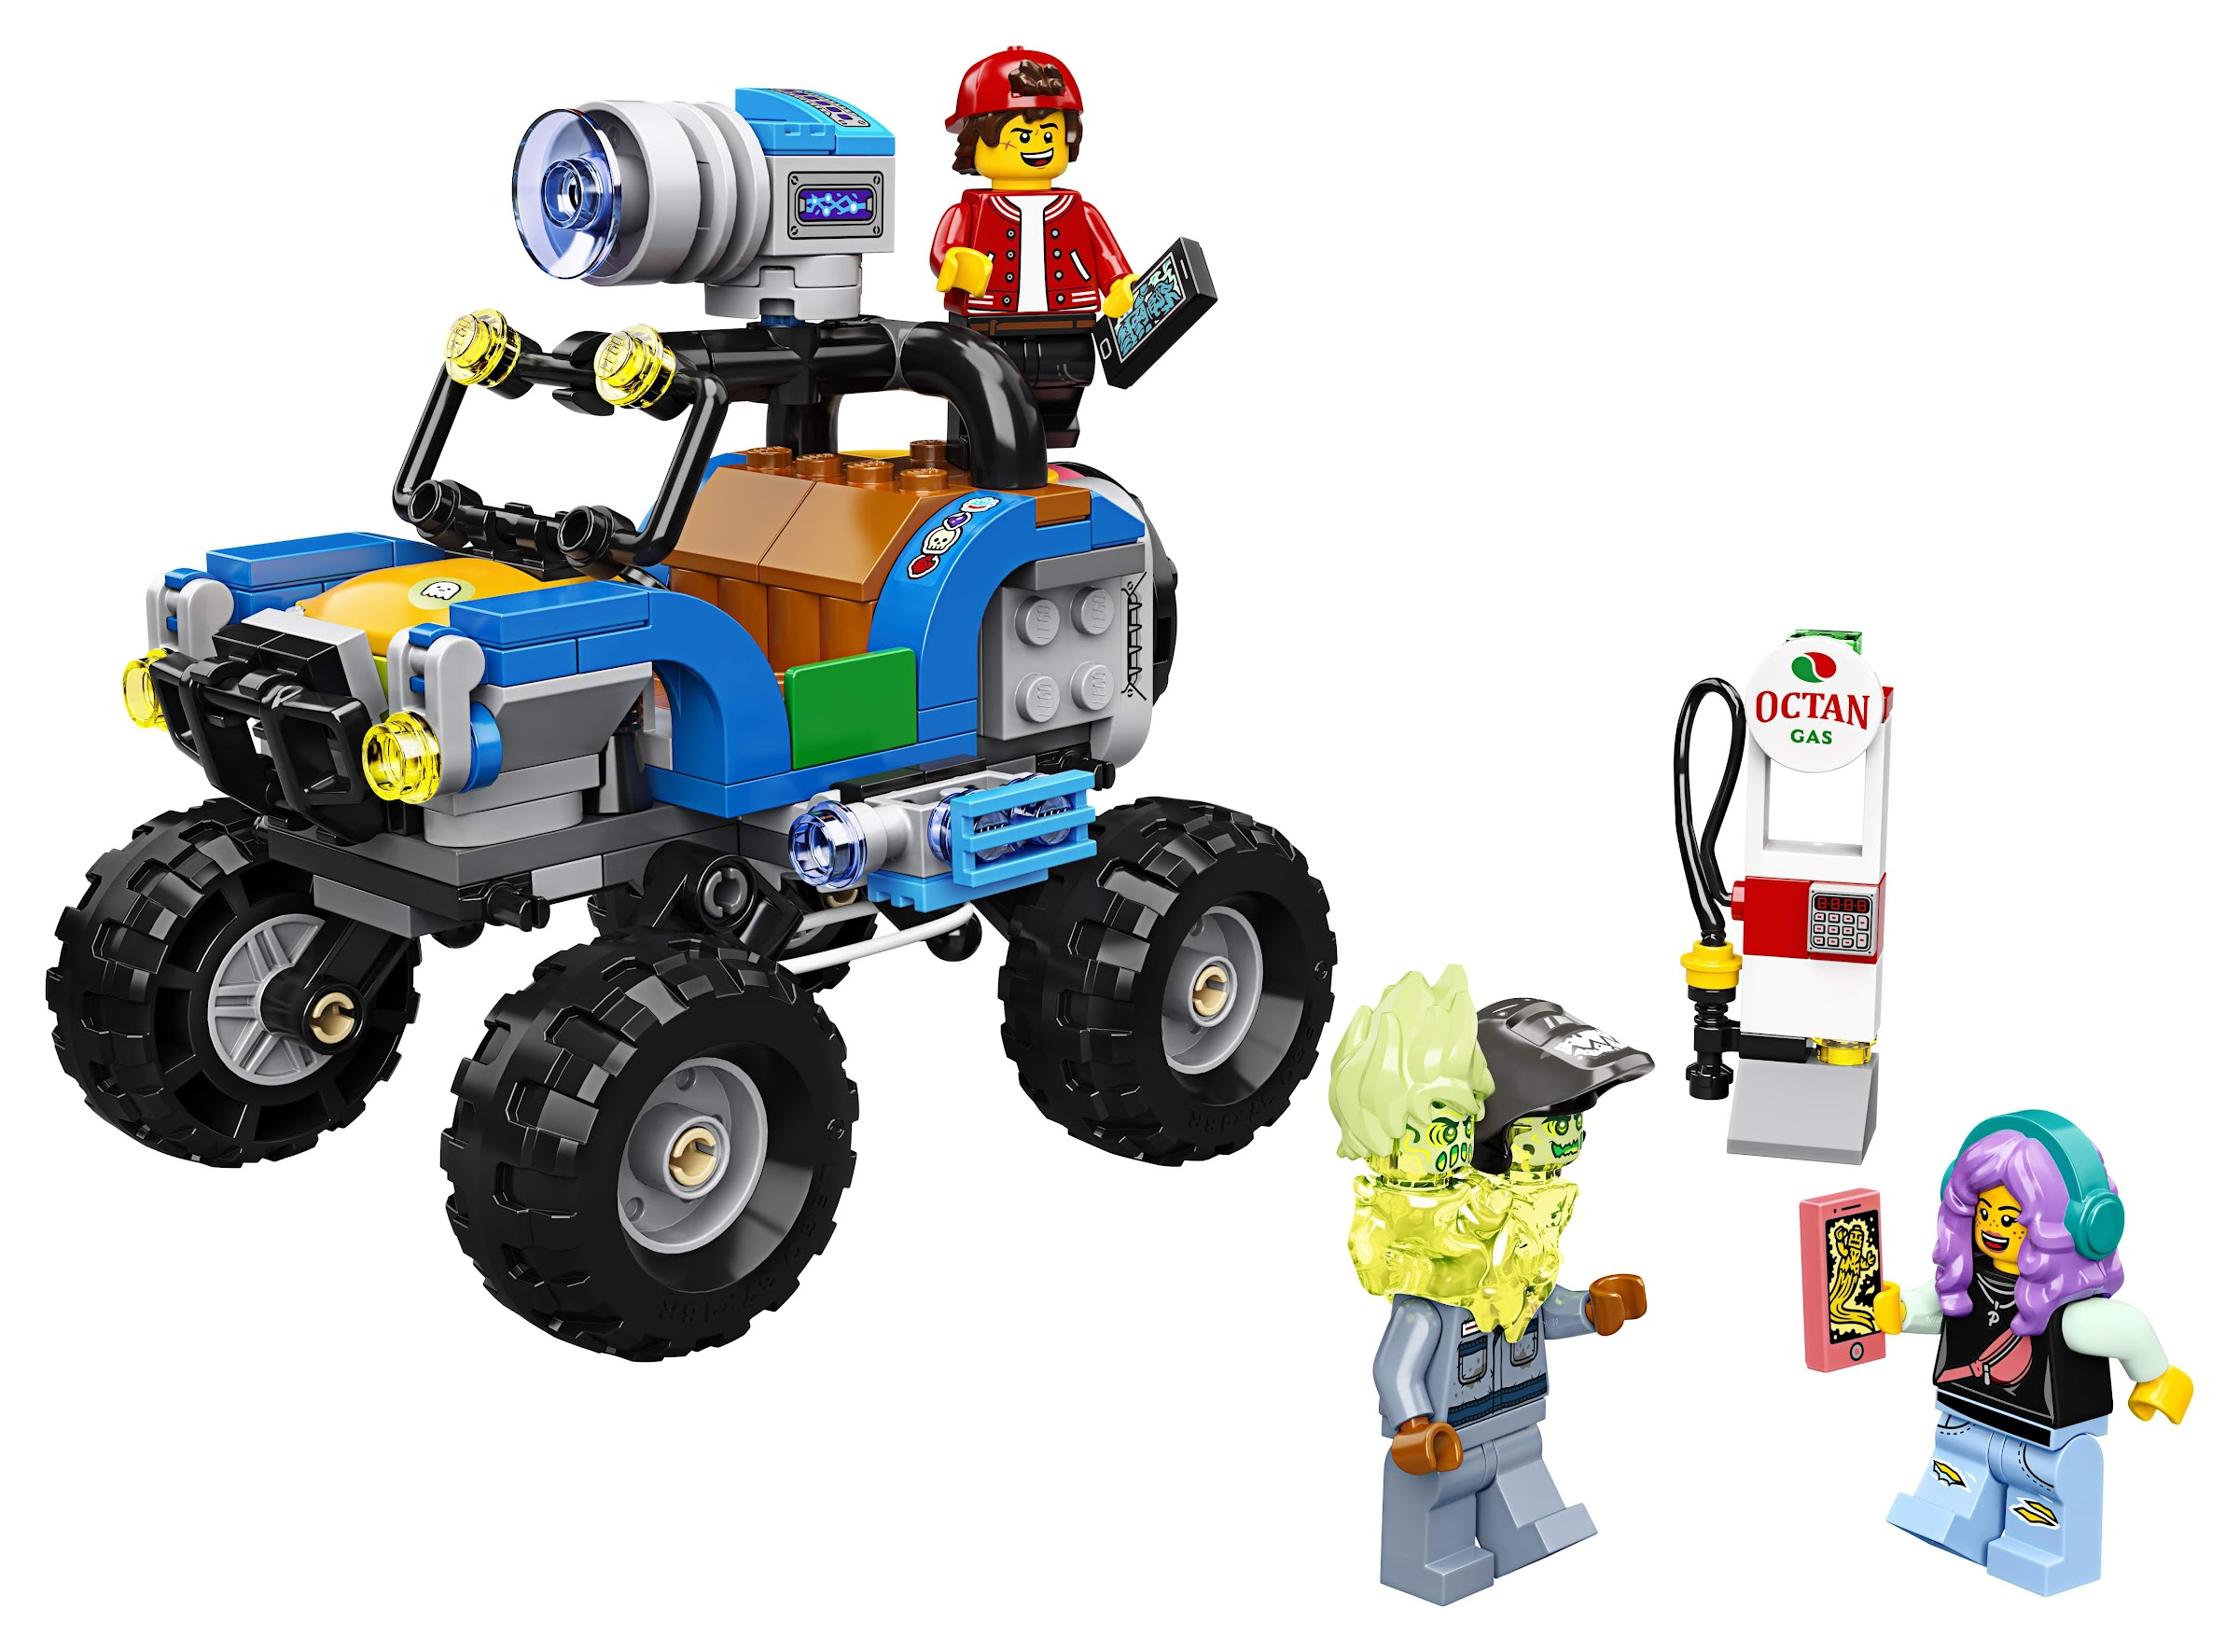 New Lego Sets 2020.All New 2020 Lego Hidden Side Sets Revealed Bricksfanz